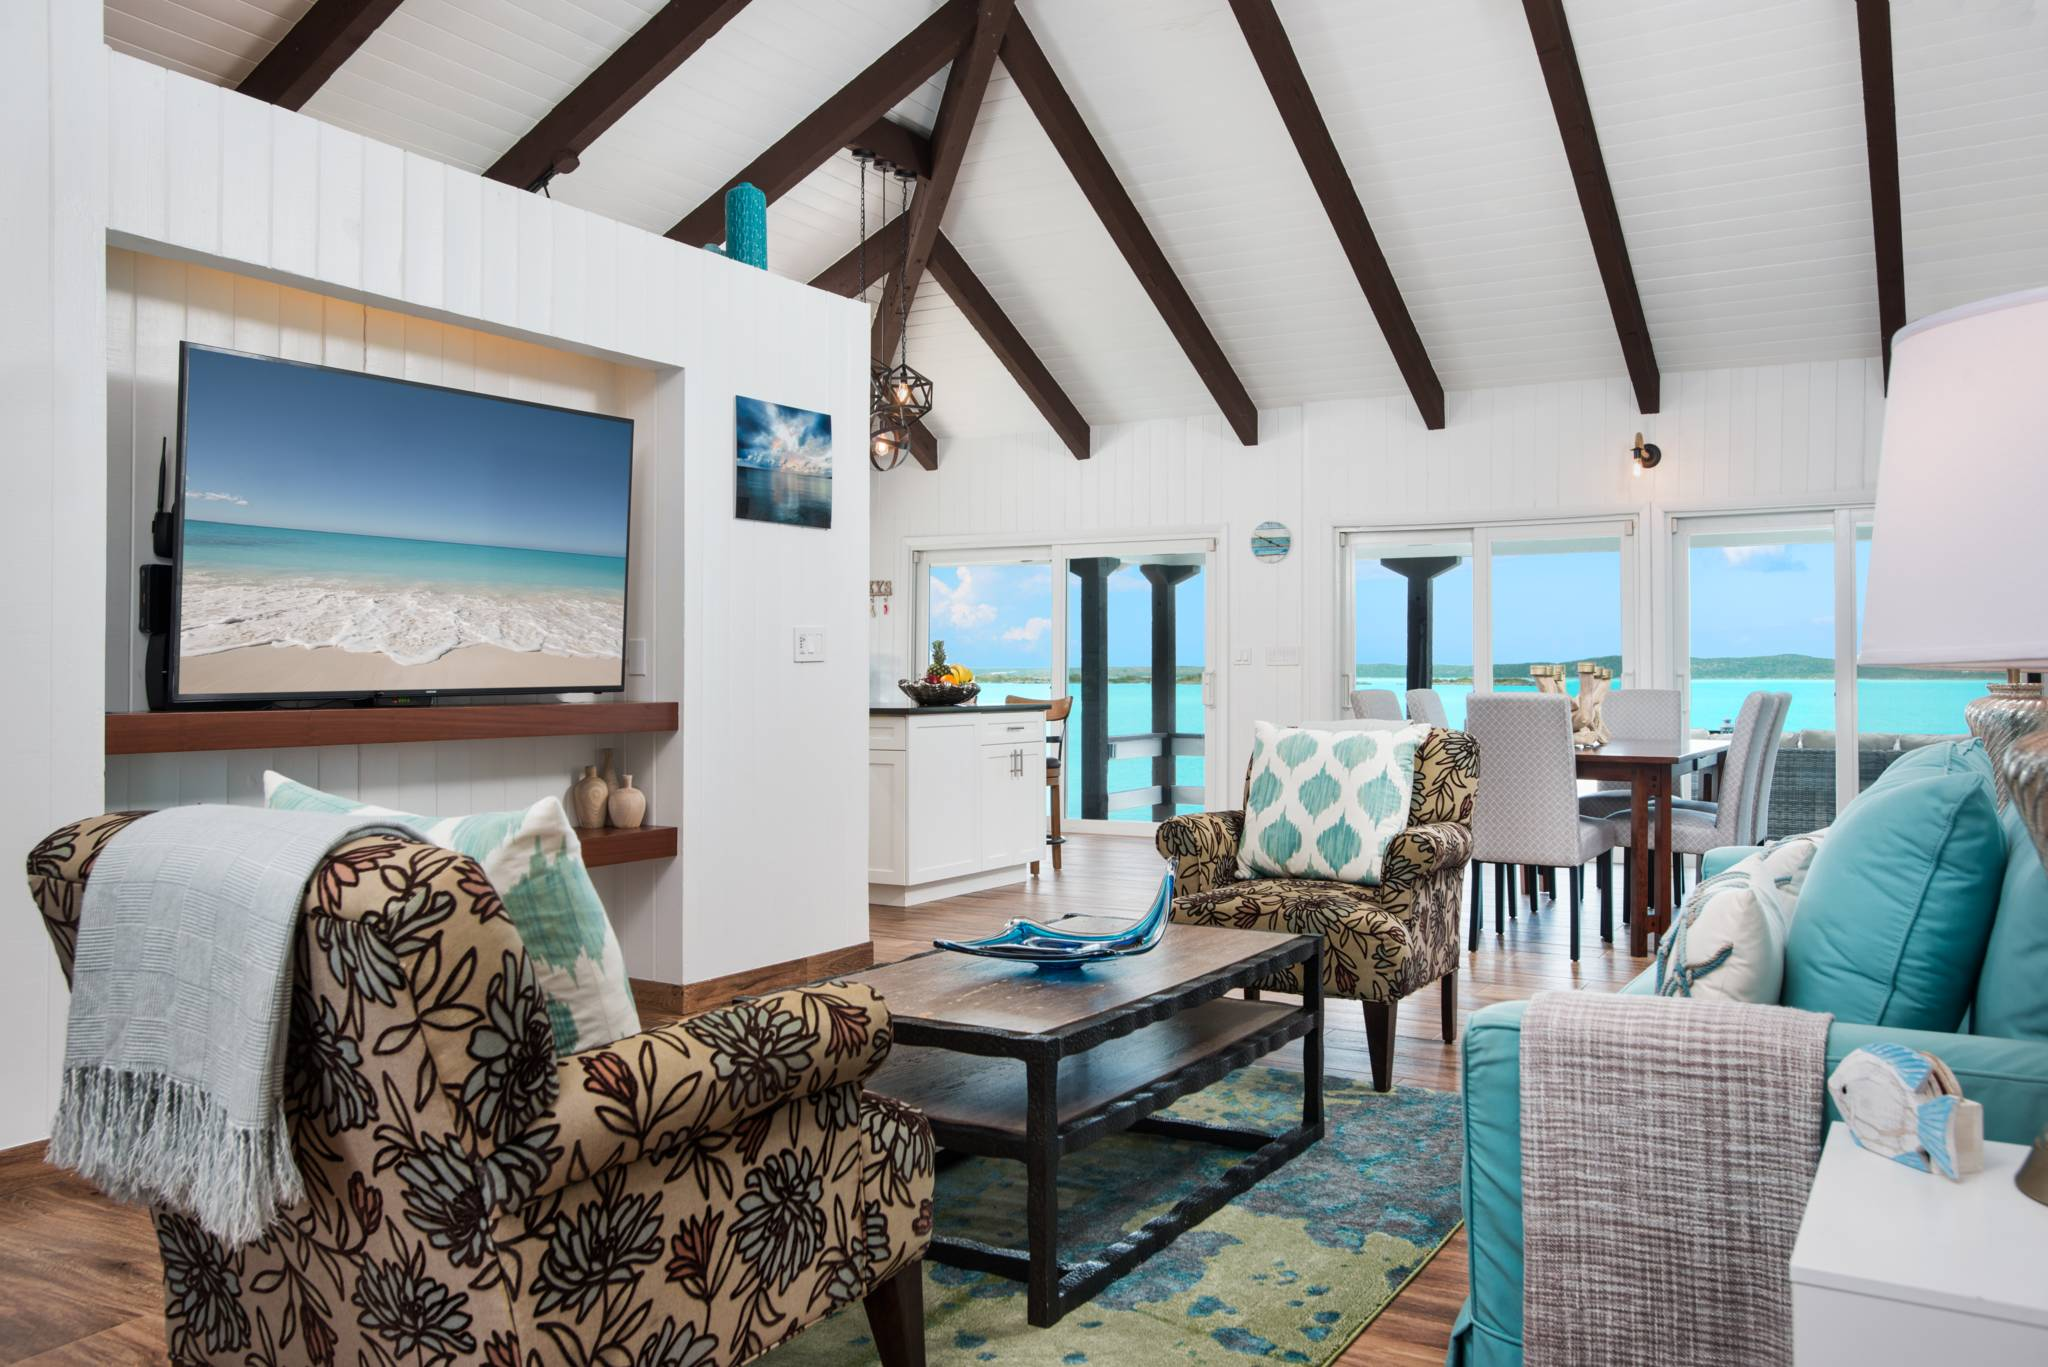 Villa Bashert a waterfront vacation rental villa on Chalk Sound, Providenciales